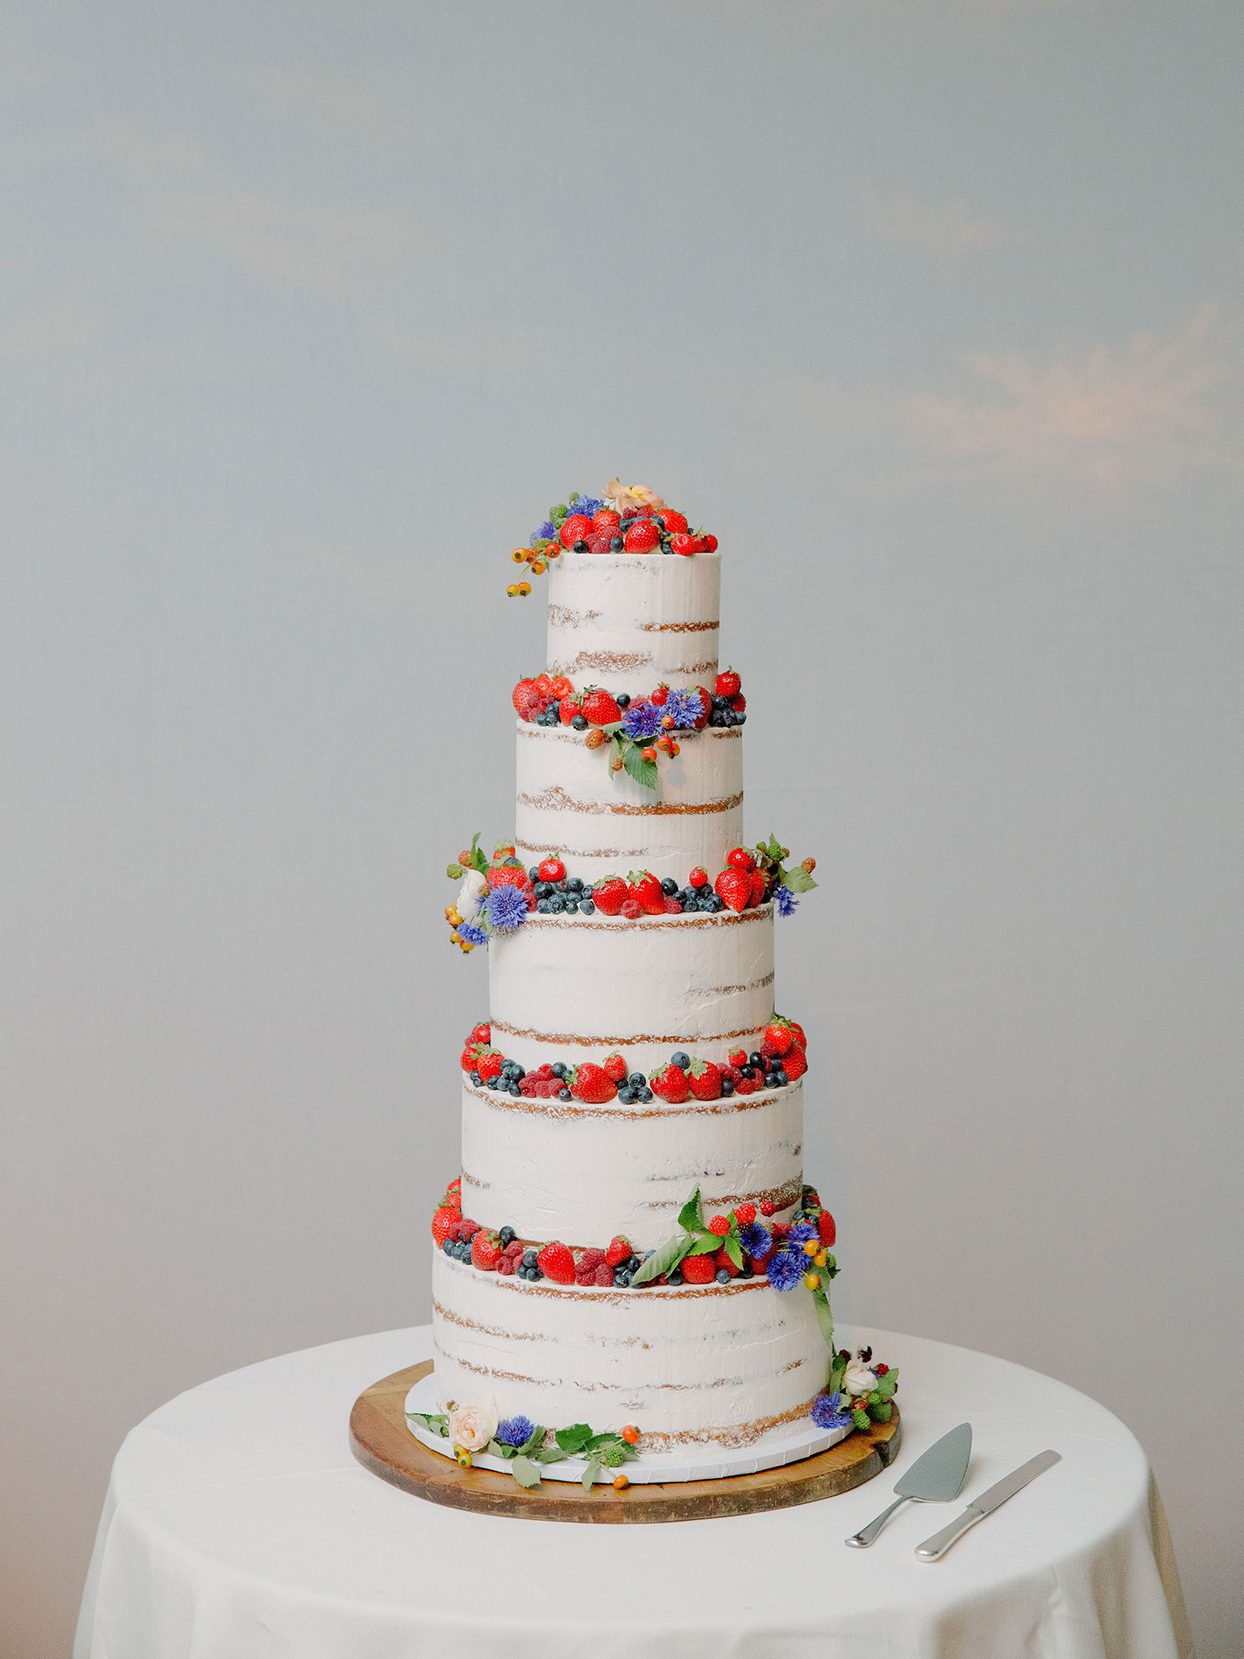 tall wedding cake with berry and wildflower decorations